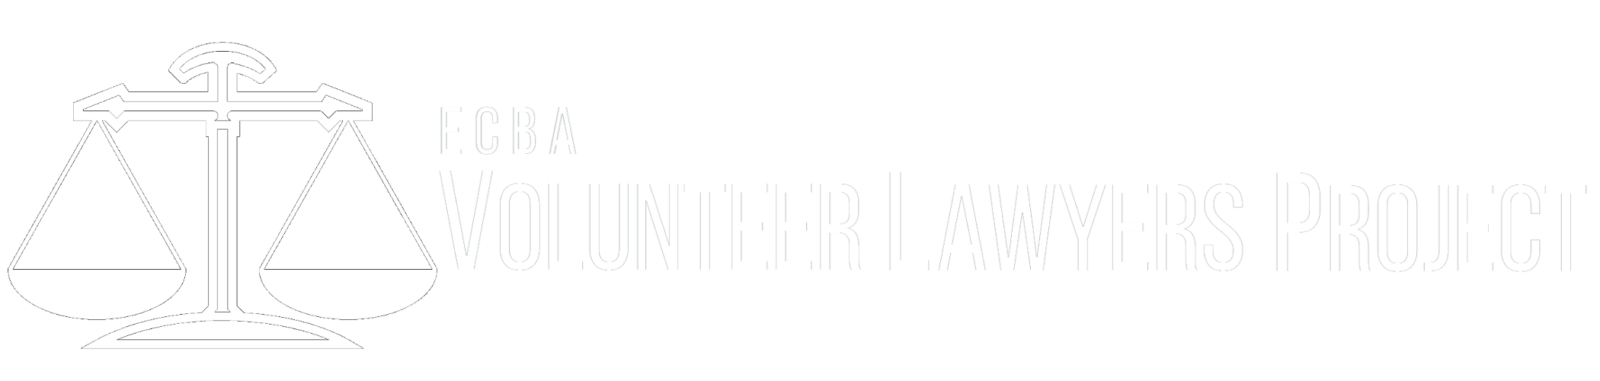 ECBA Volunteer Lawyers Project